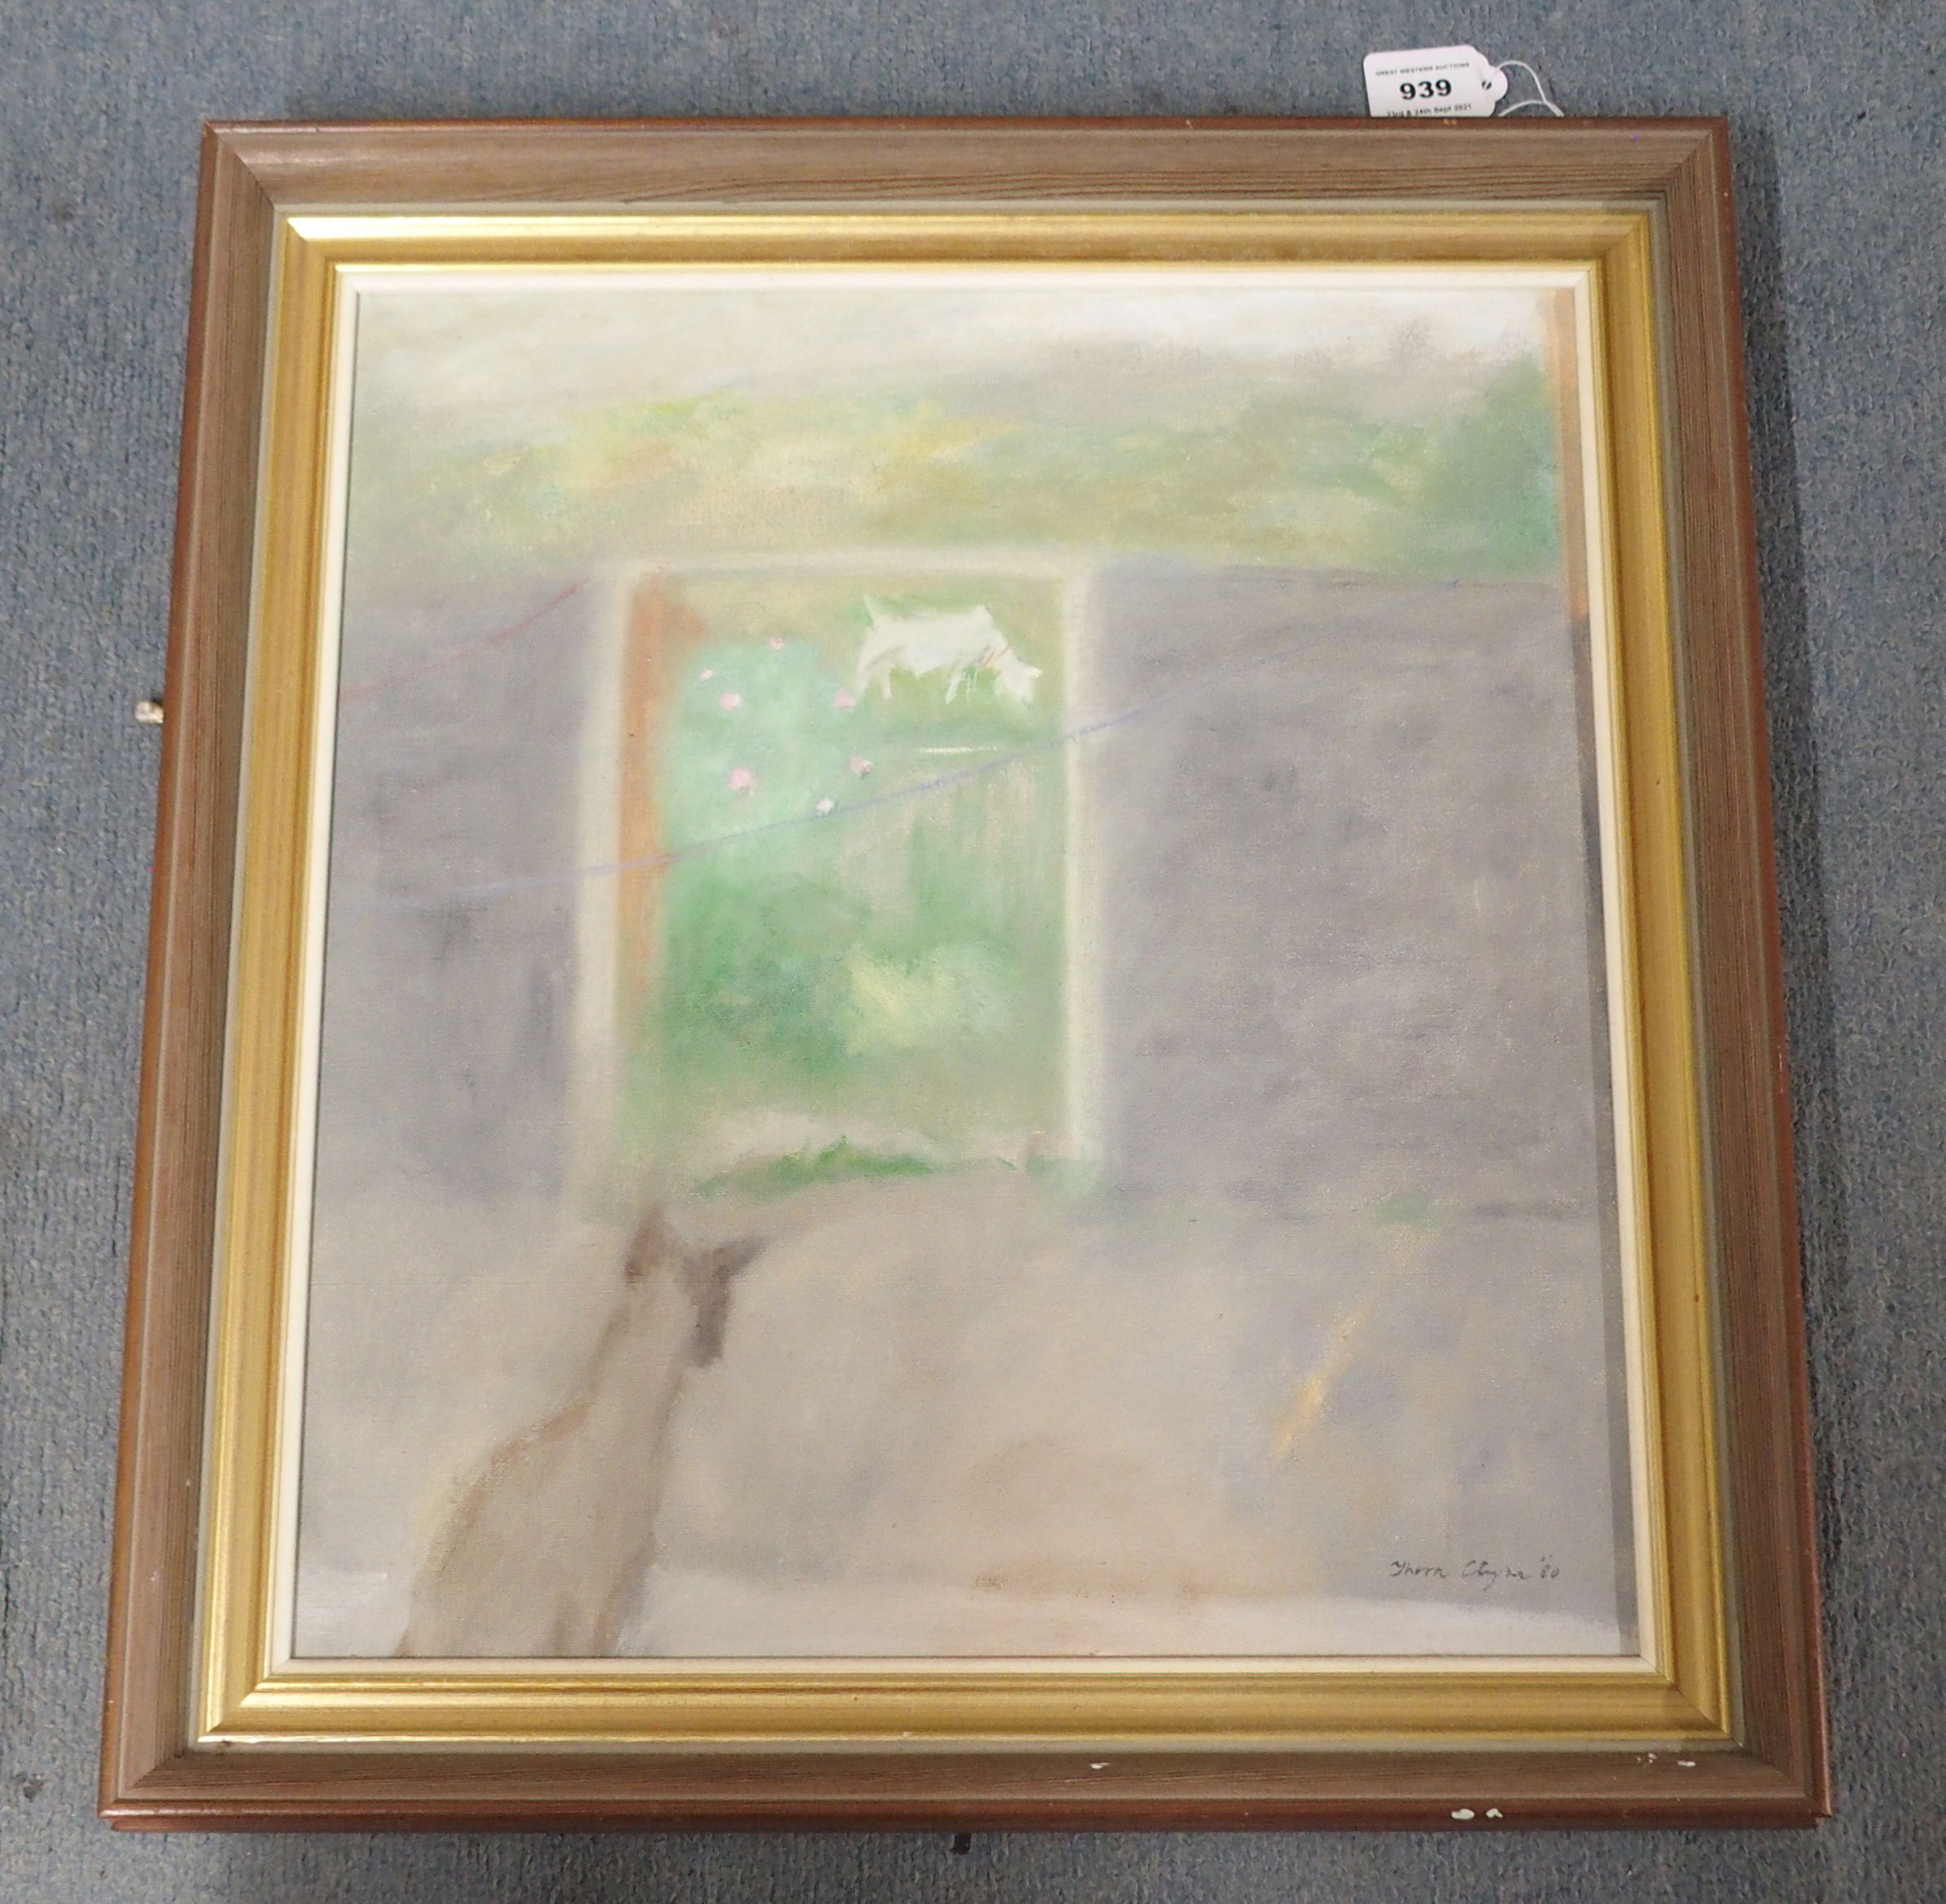 THORA CLYNE SSWA (SCOTTISH 1937-2020) WILD ROSE AND GOAT Oil on canvas, signed and dated (19)80, - Image 2 of 5